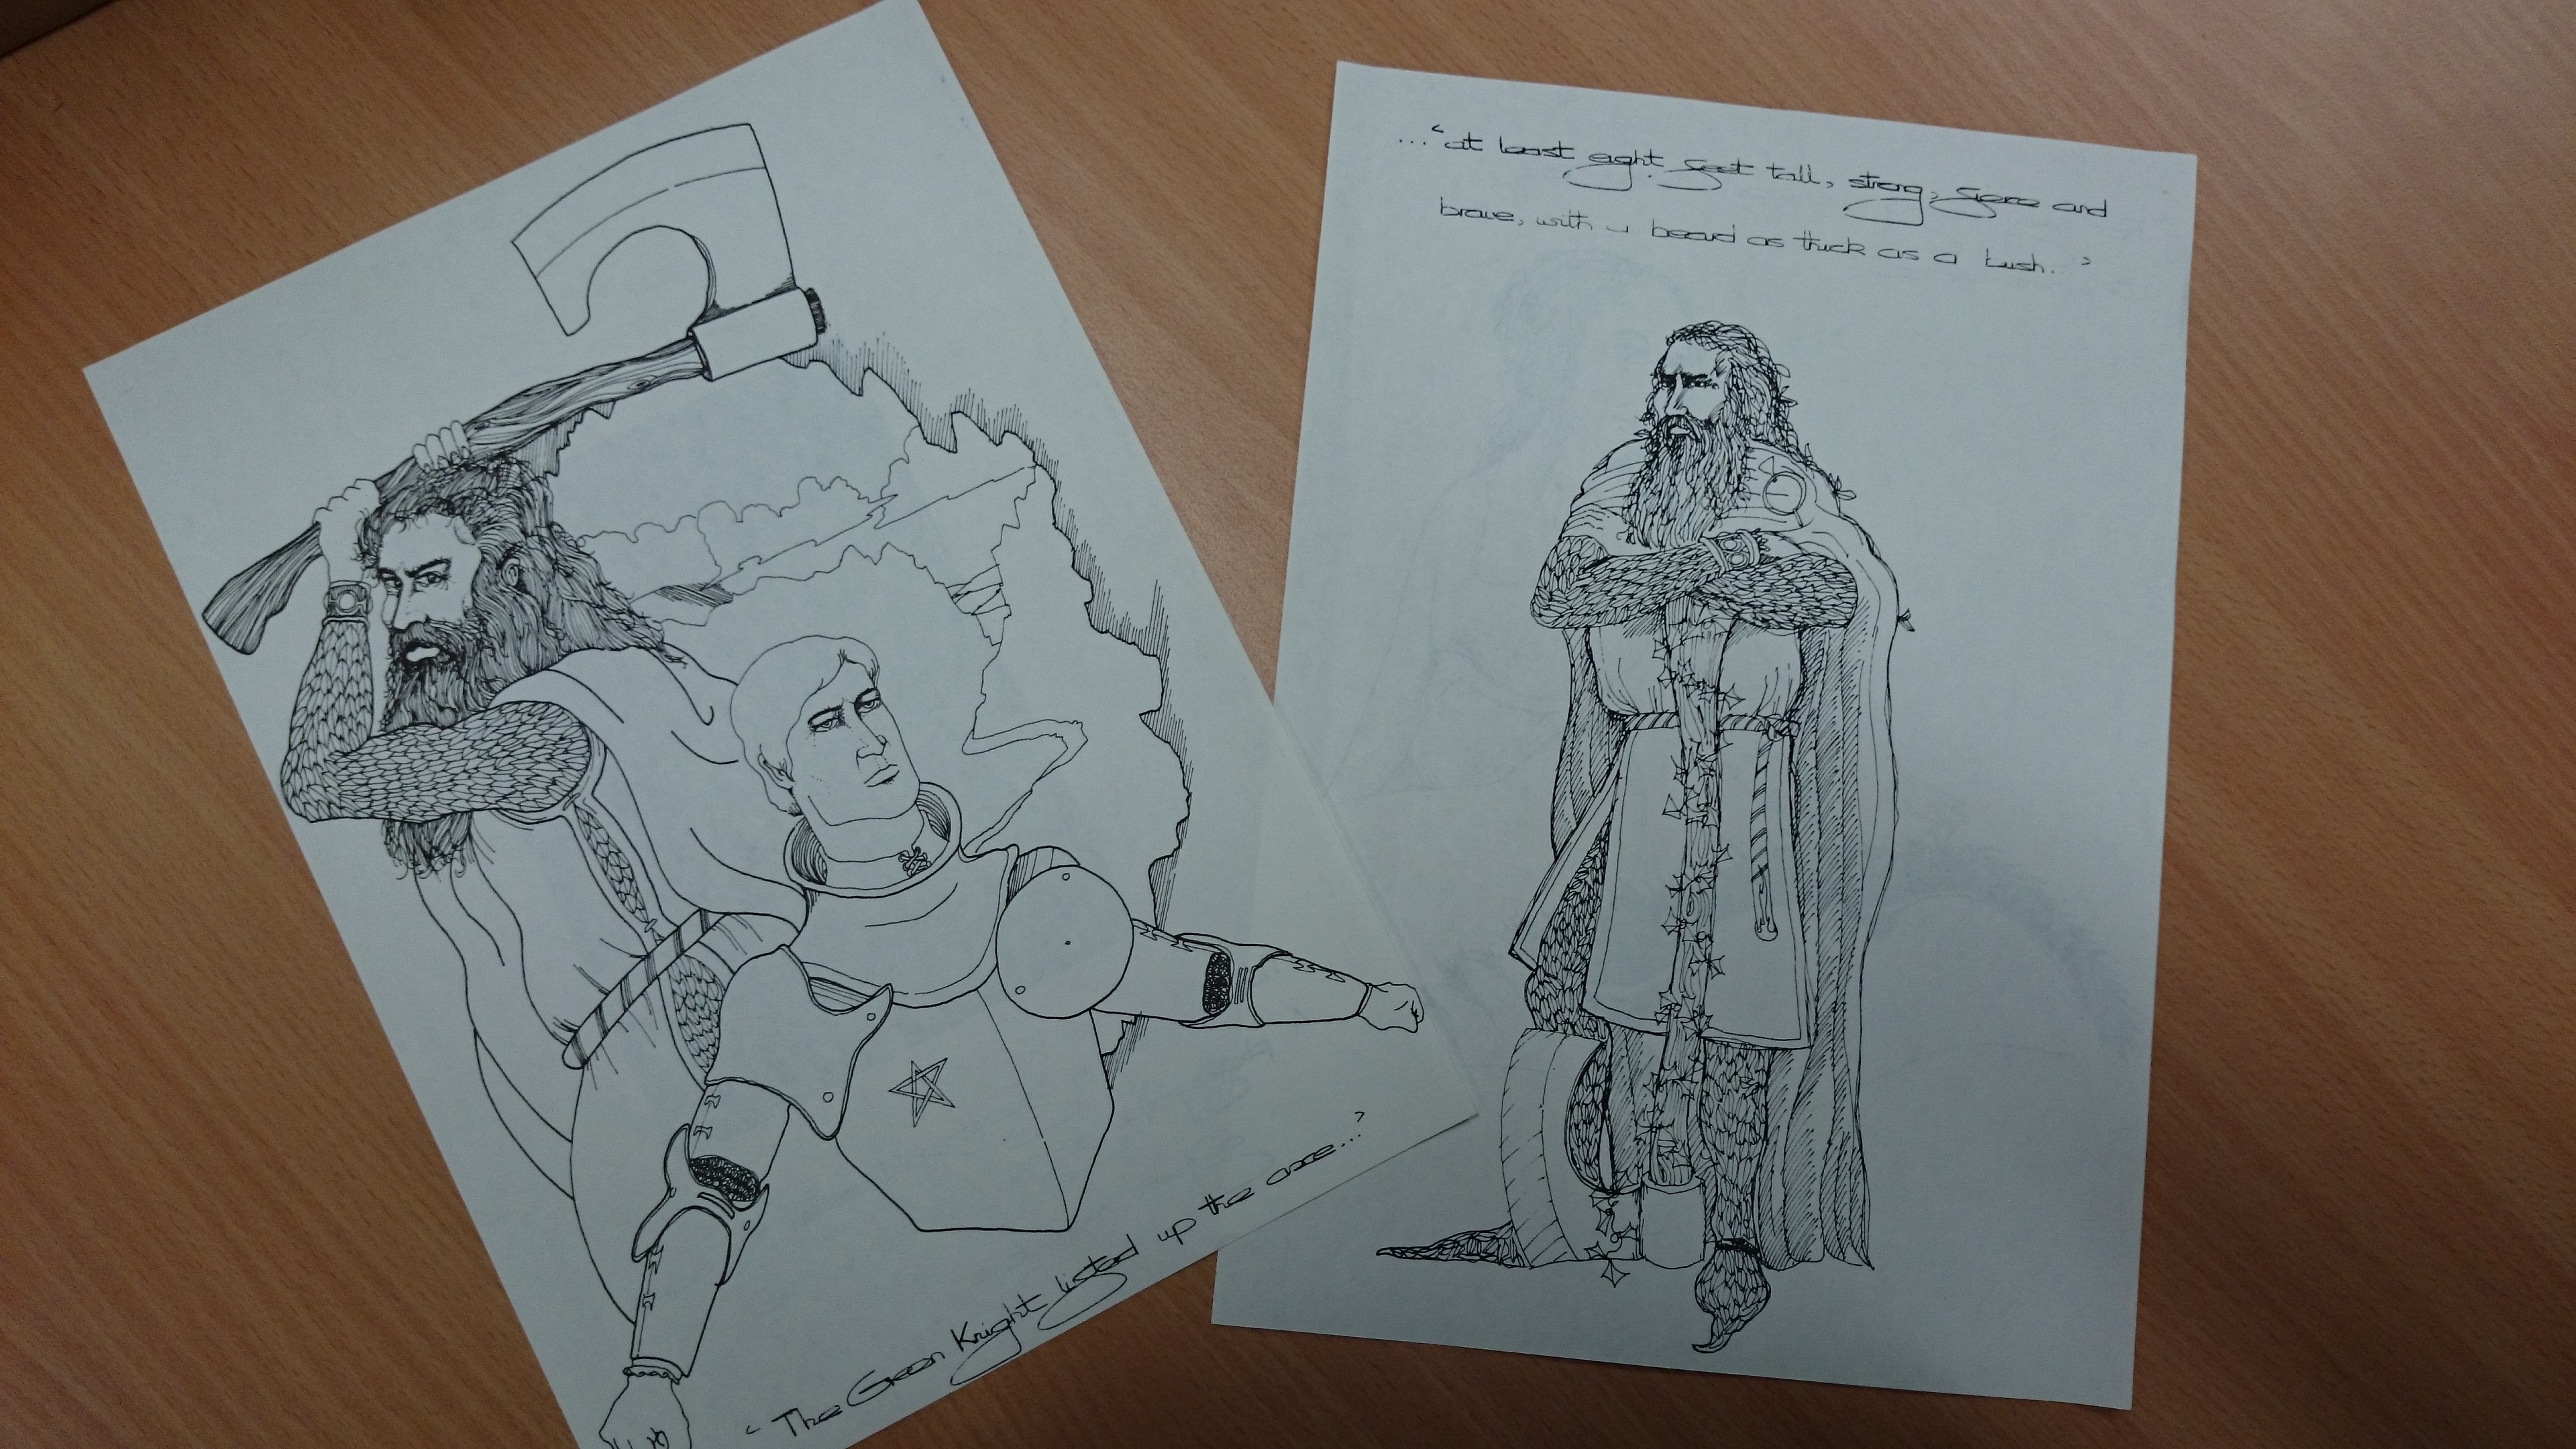 theatre collections special collections archives blog page 2 two illustrations from the teaching booklet featuring gawain and the green knight themselves